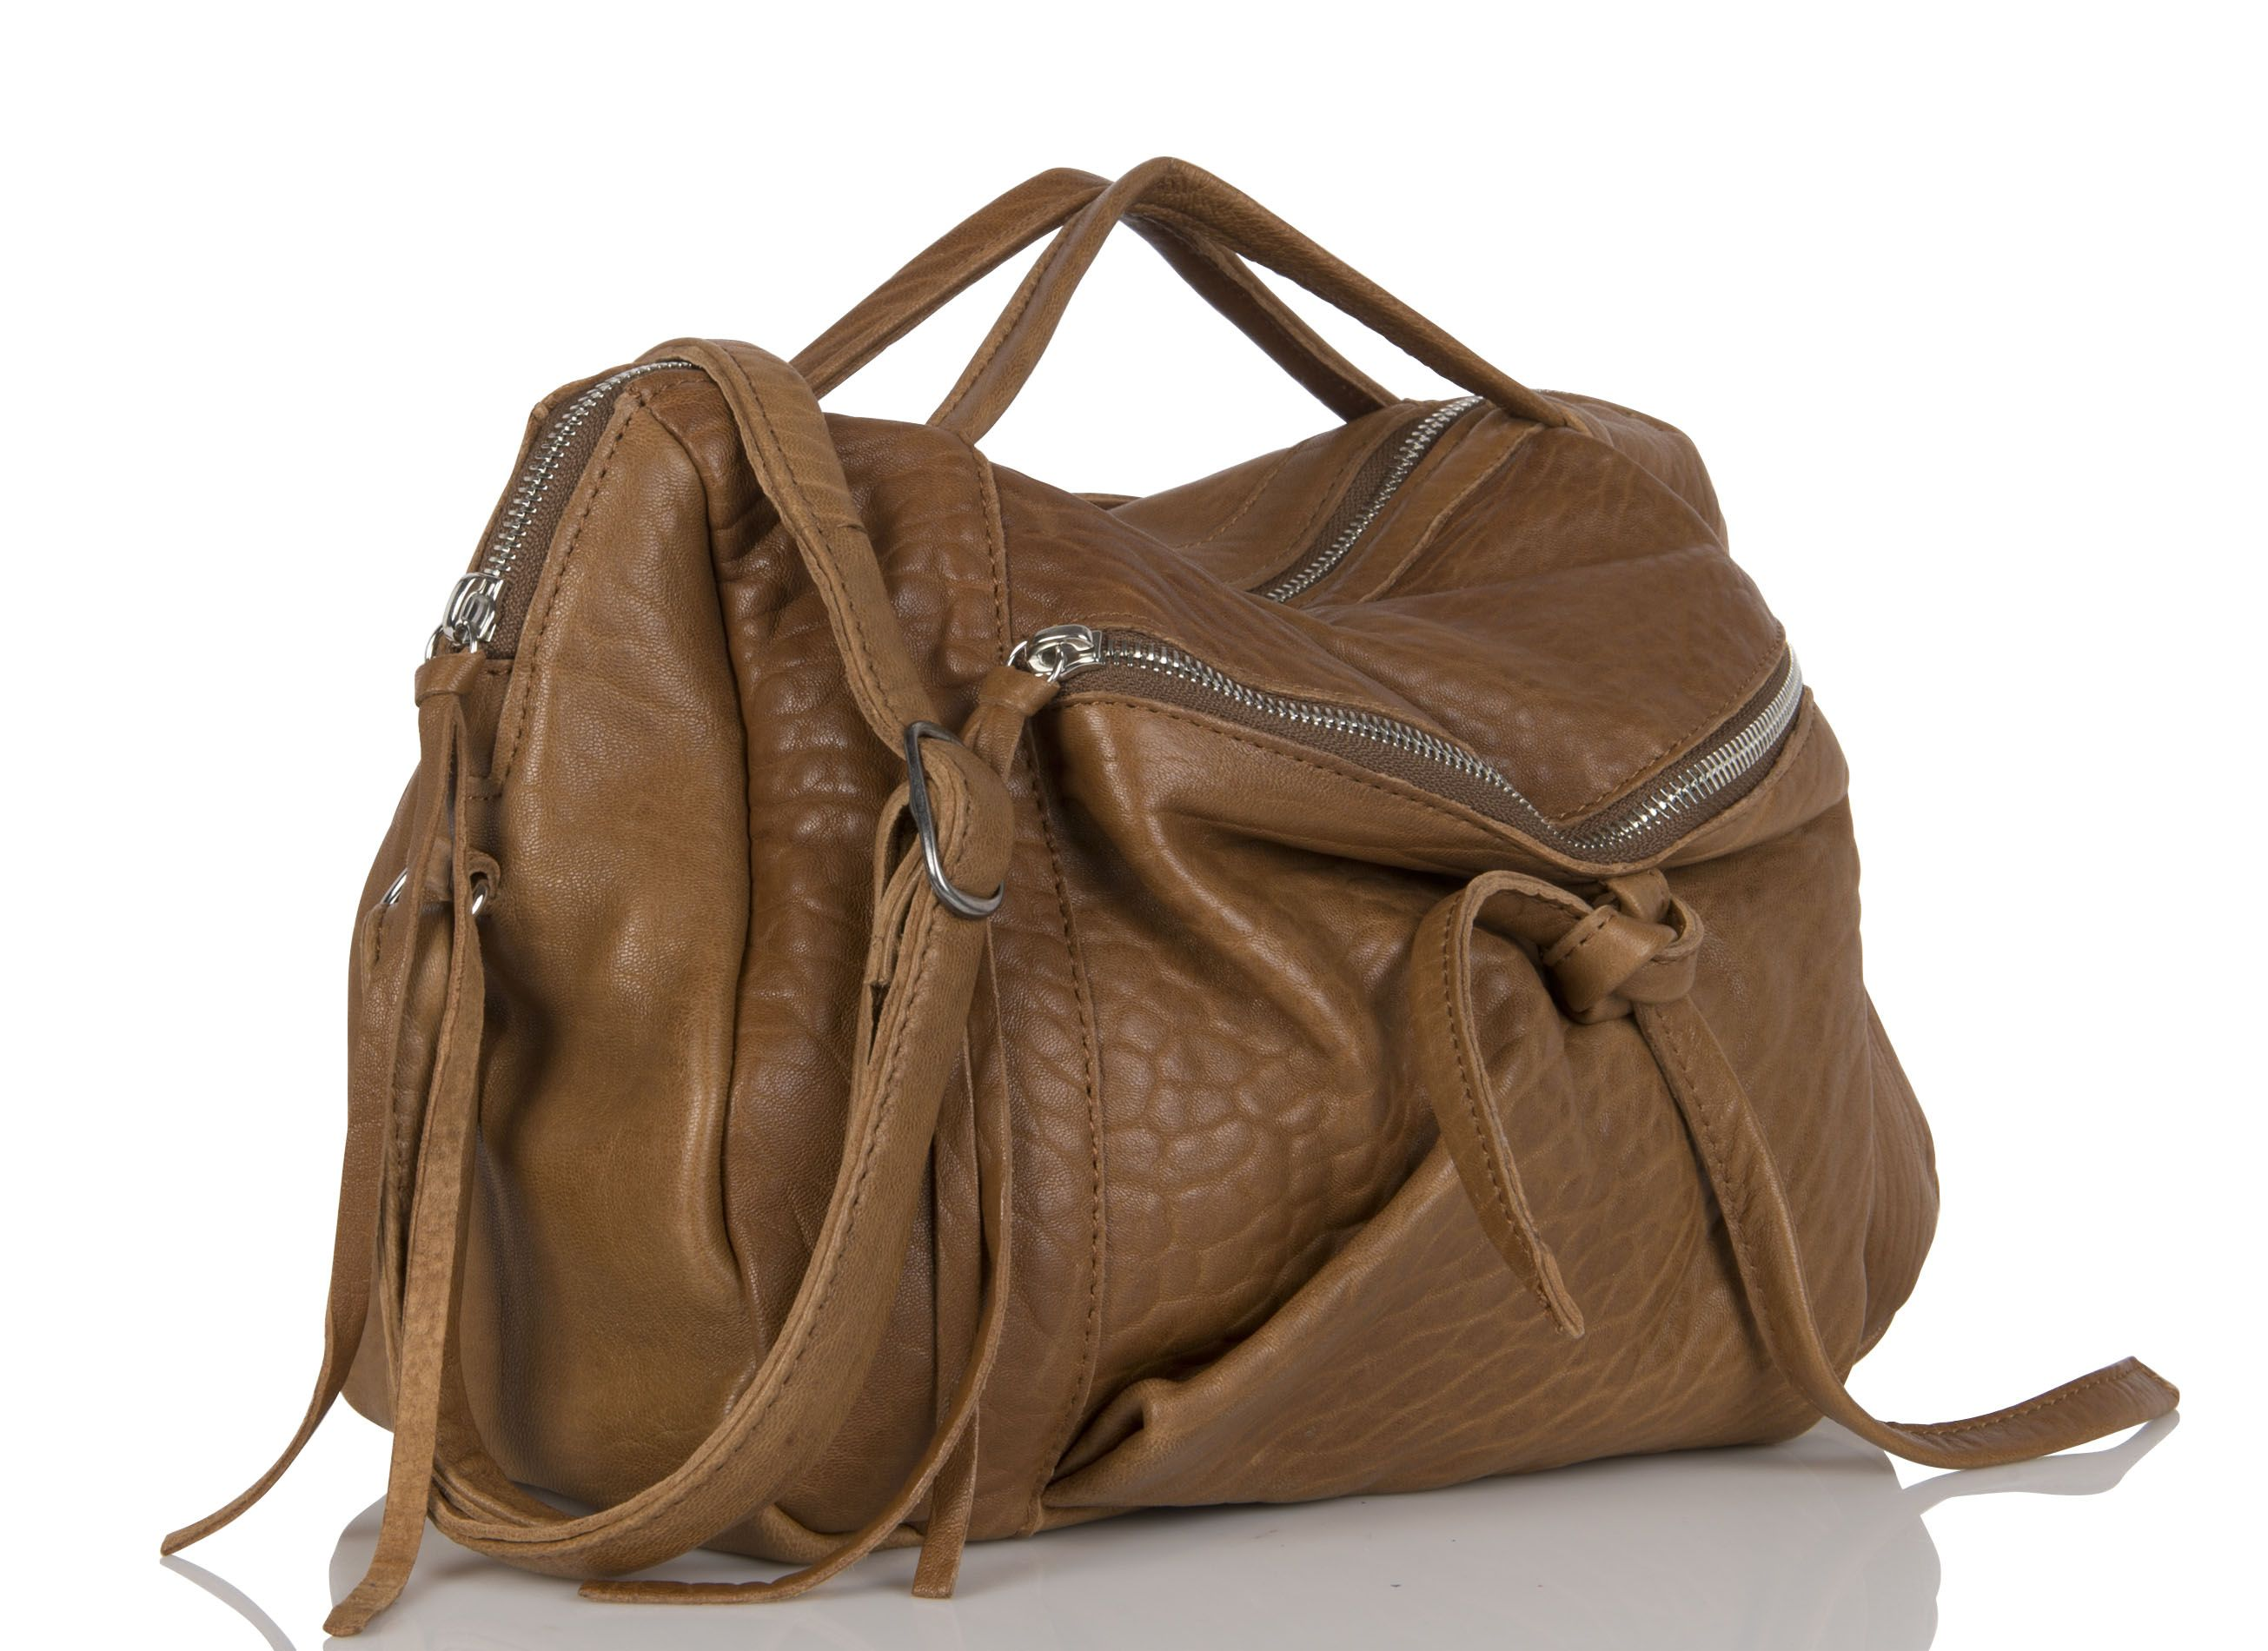 122ab2e8fd Up to 50% Off. Discover this Aridza Bross Liv Zipped Leather Bag Beige from  our Aridza Bross range. Order online today from Place des Tendances.